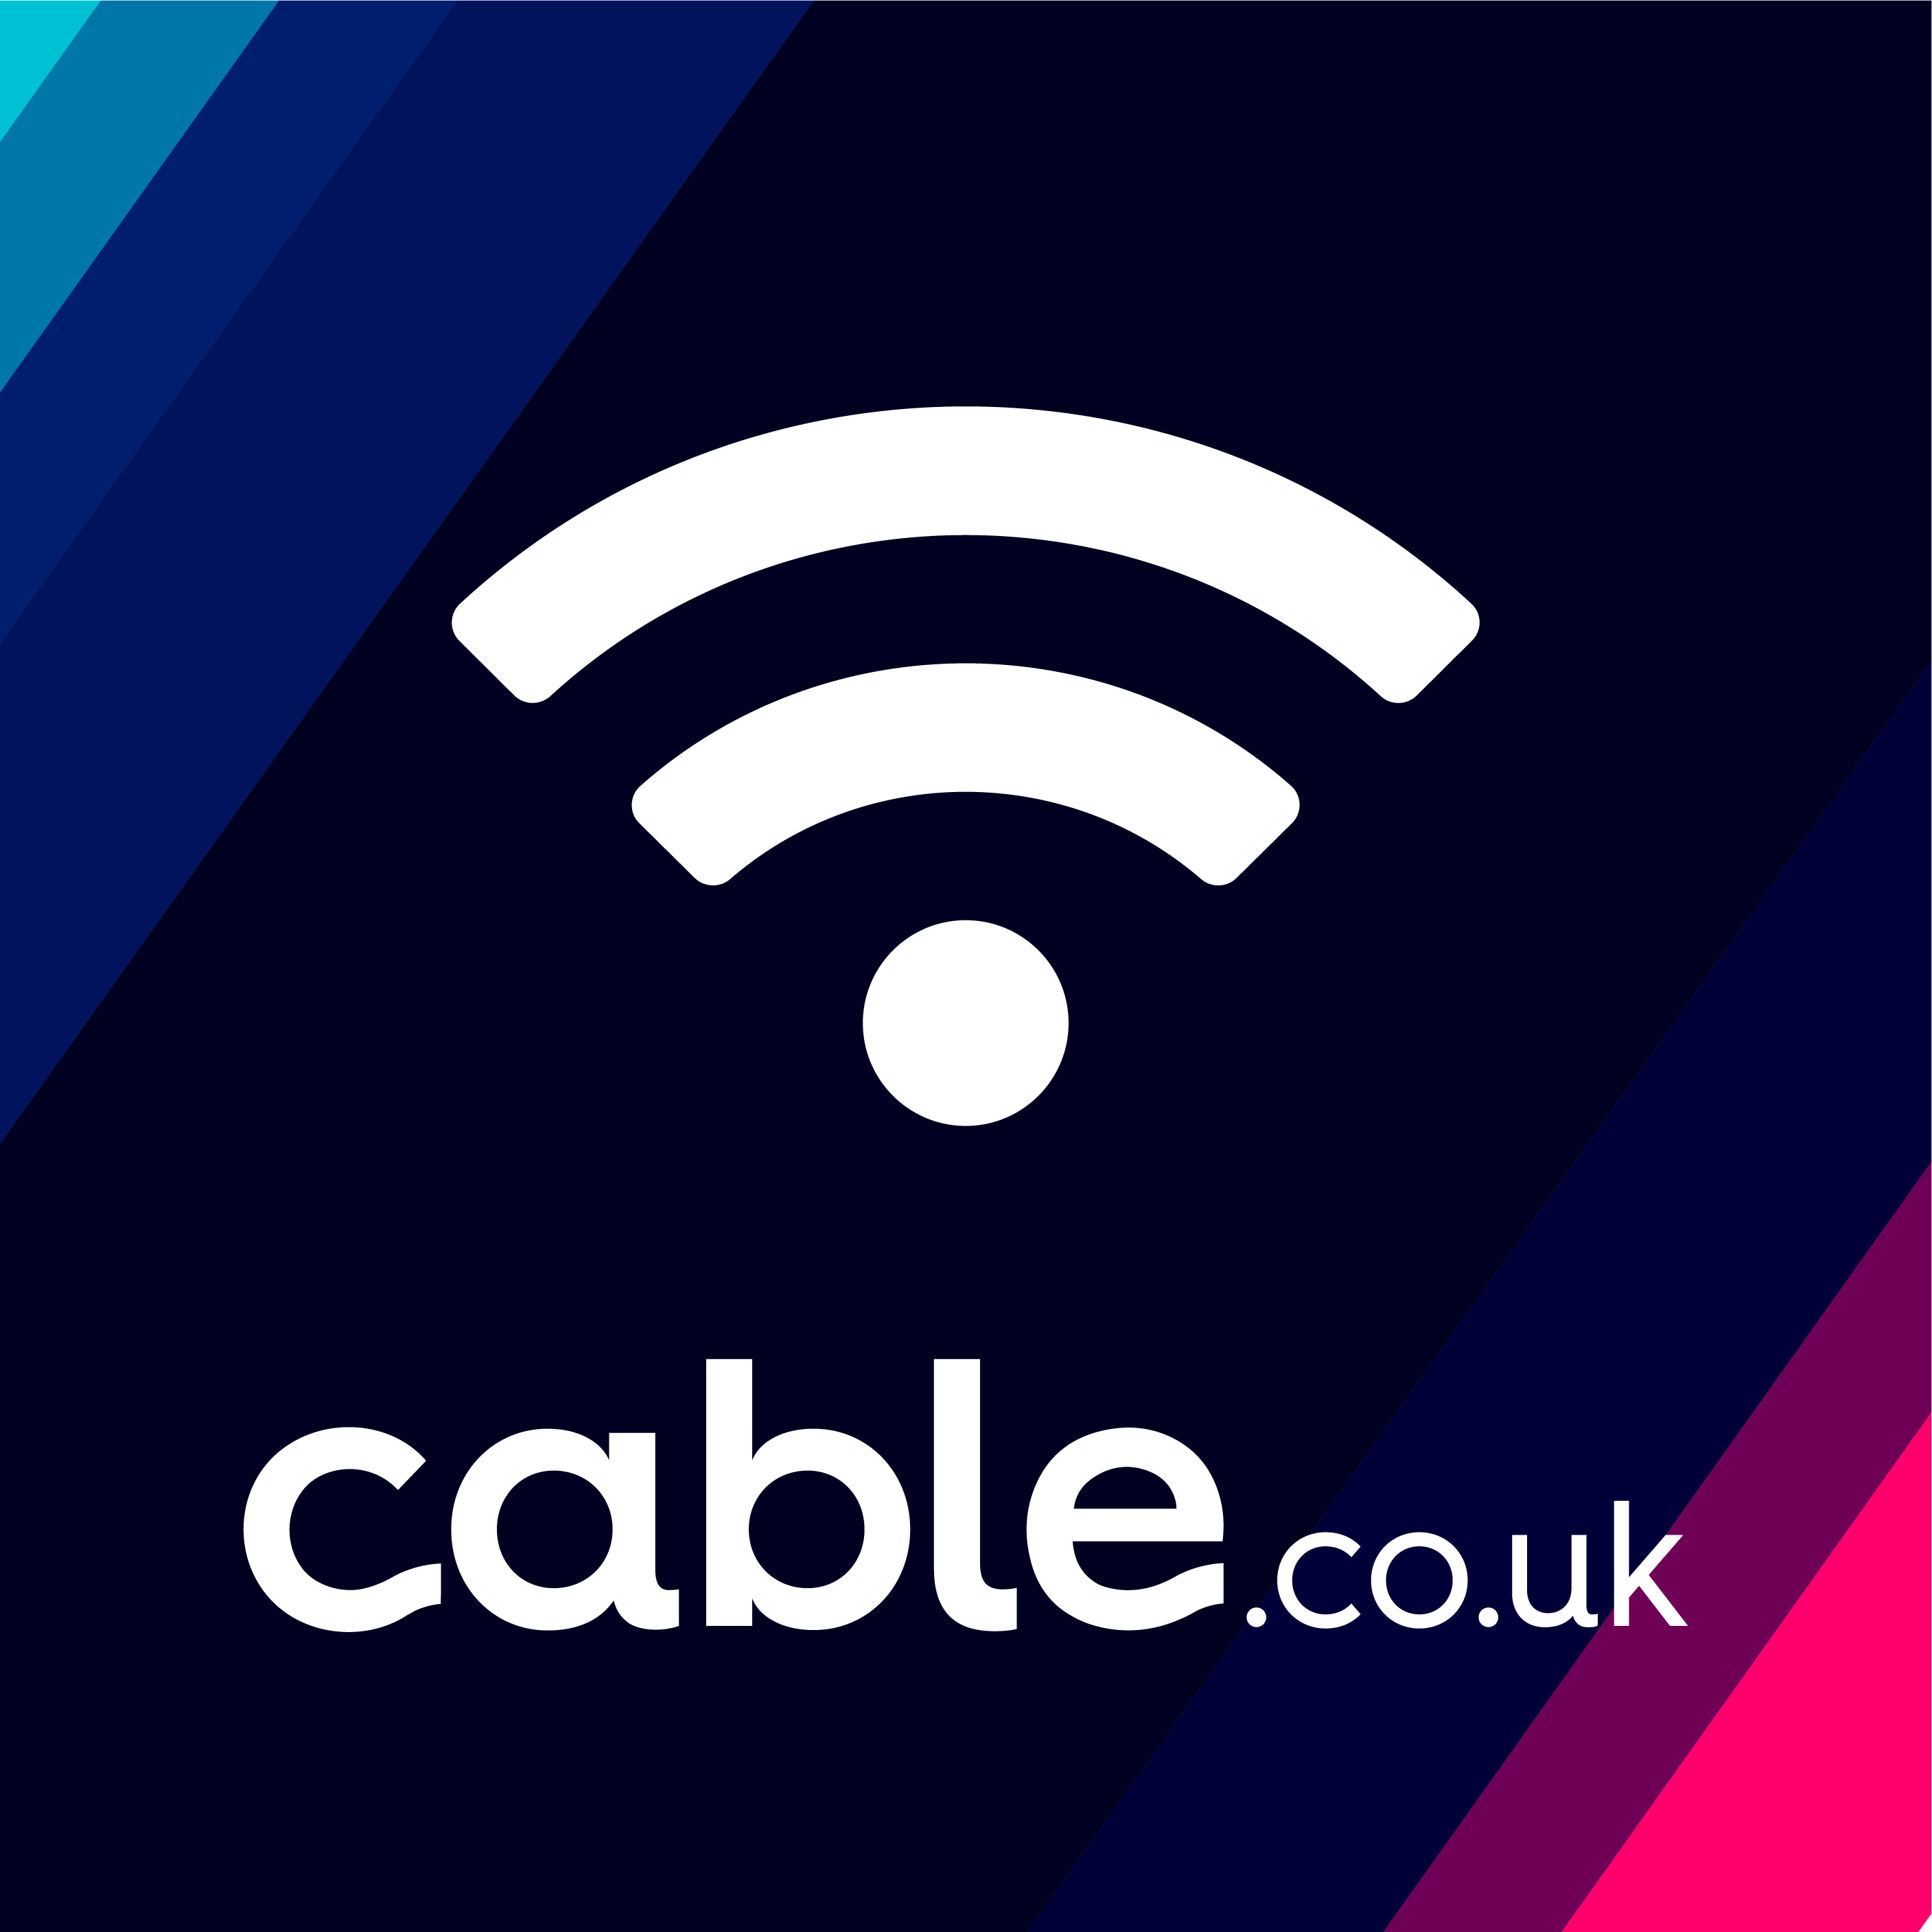 Broadband Phone Deals 18 M Compare Best Offers Cable Co Uk